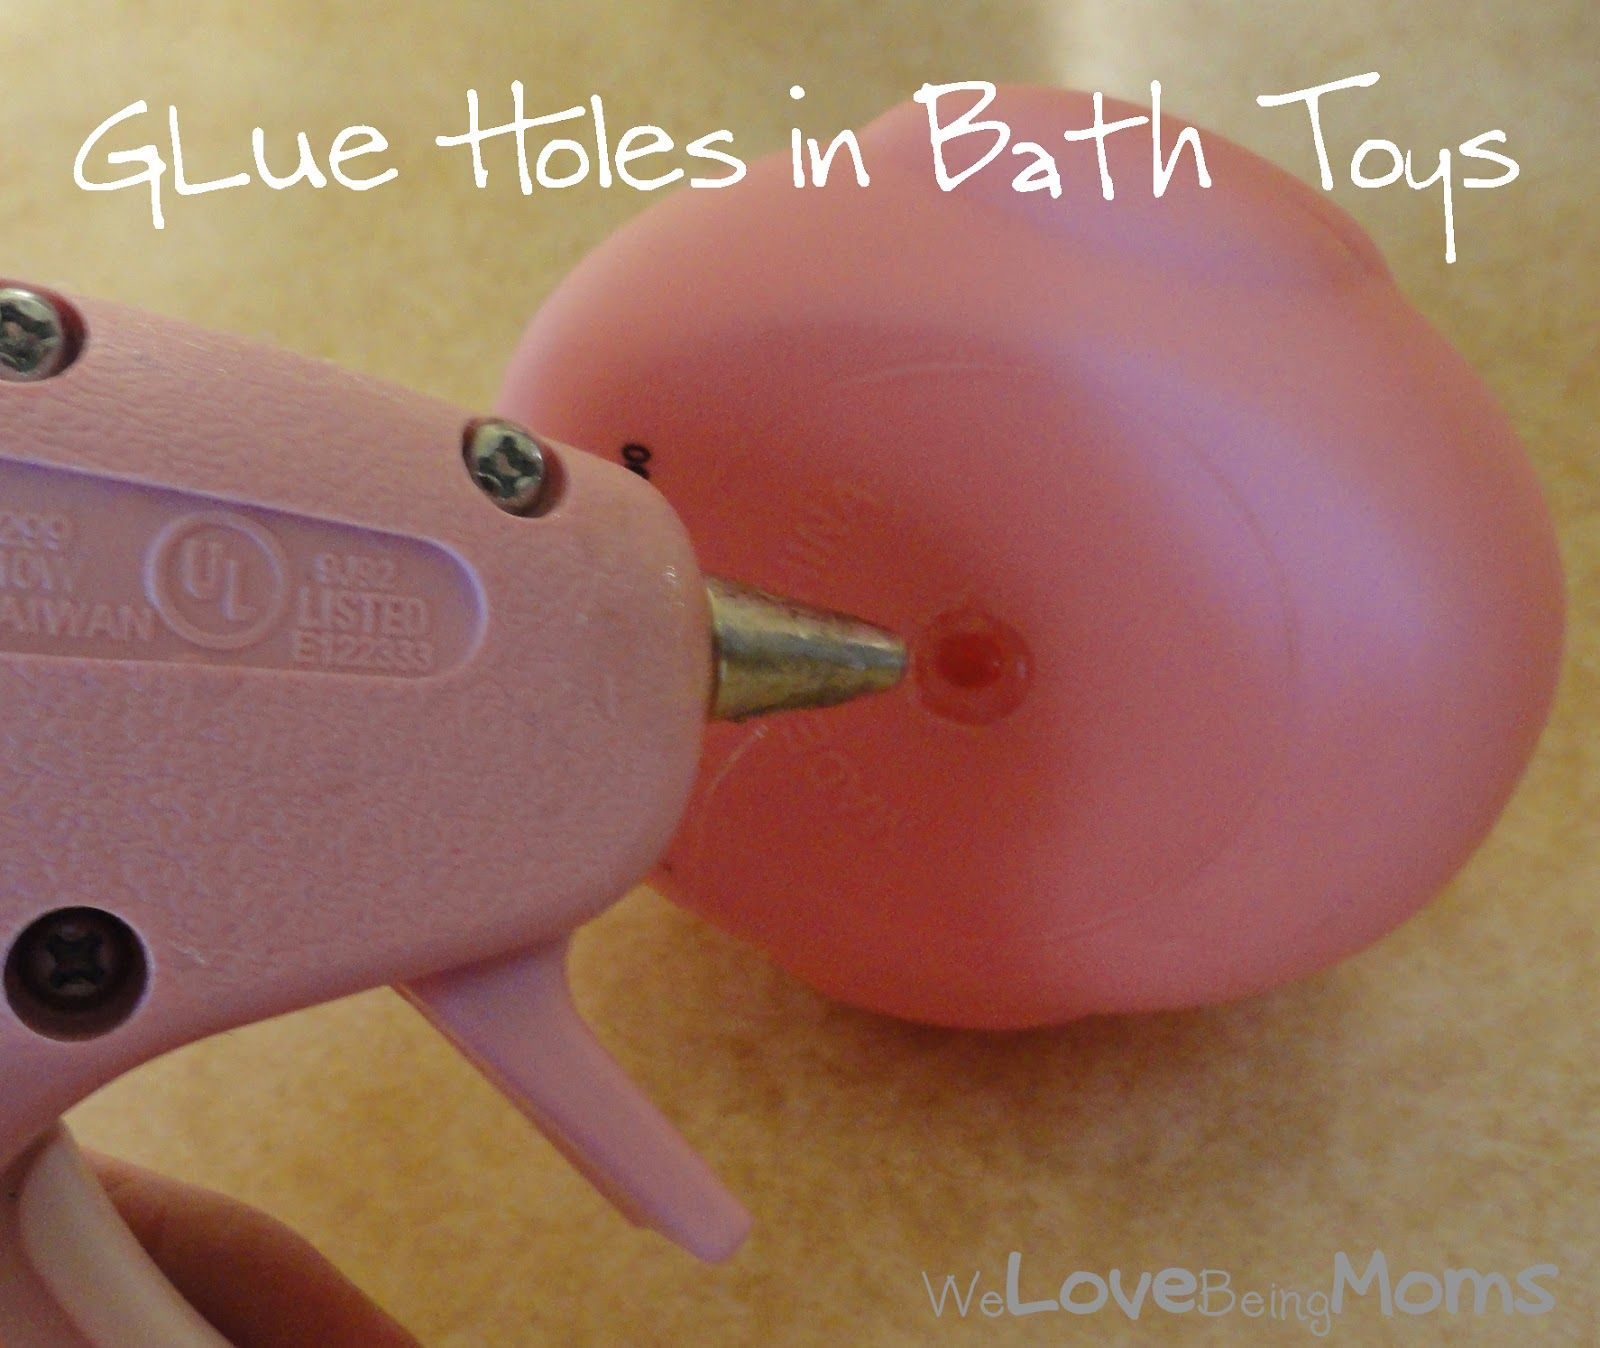 We Love Being Moms!: How & Why to Clean Bath Toys!